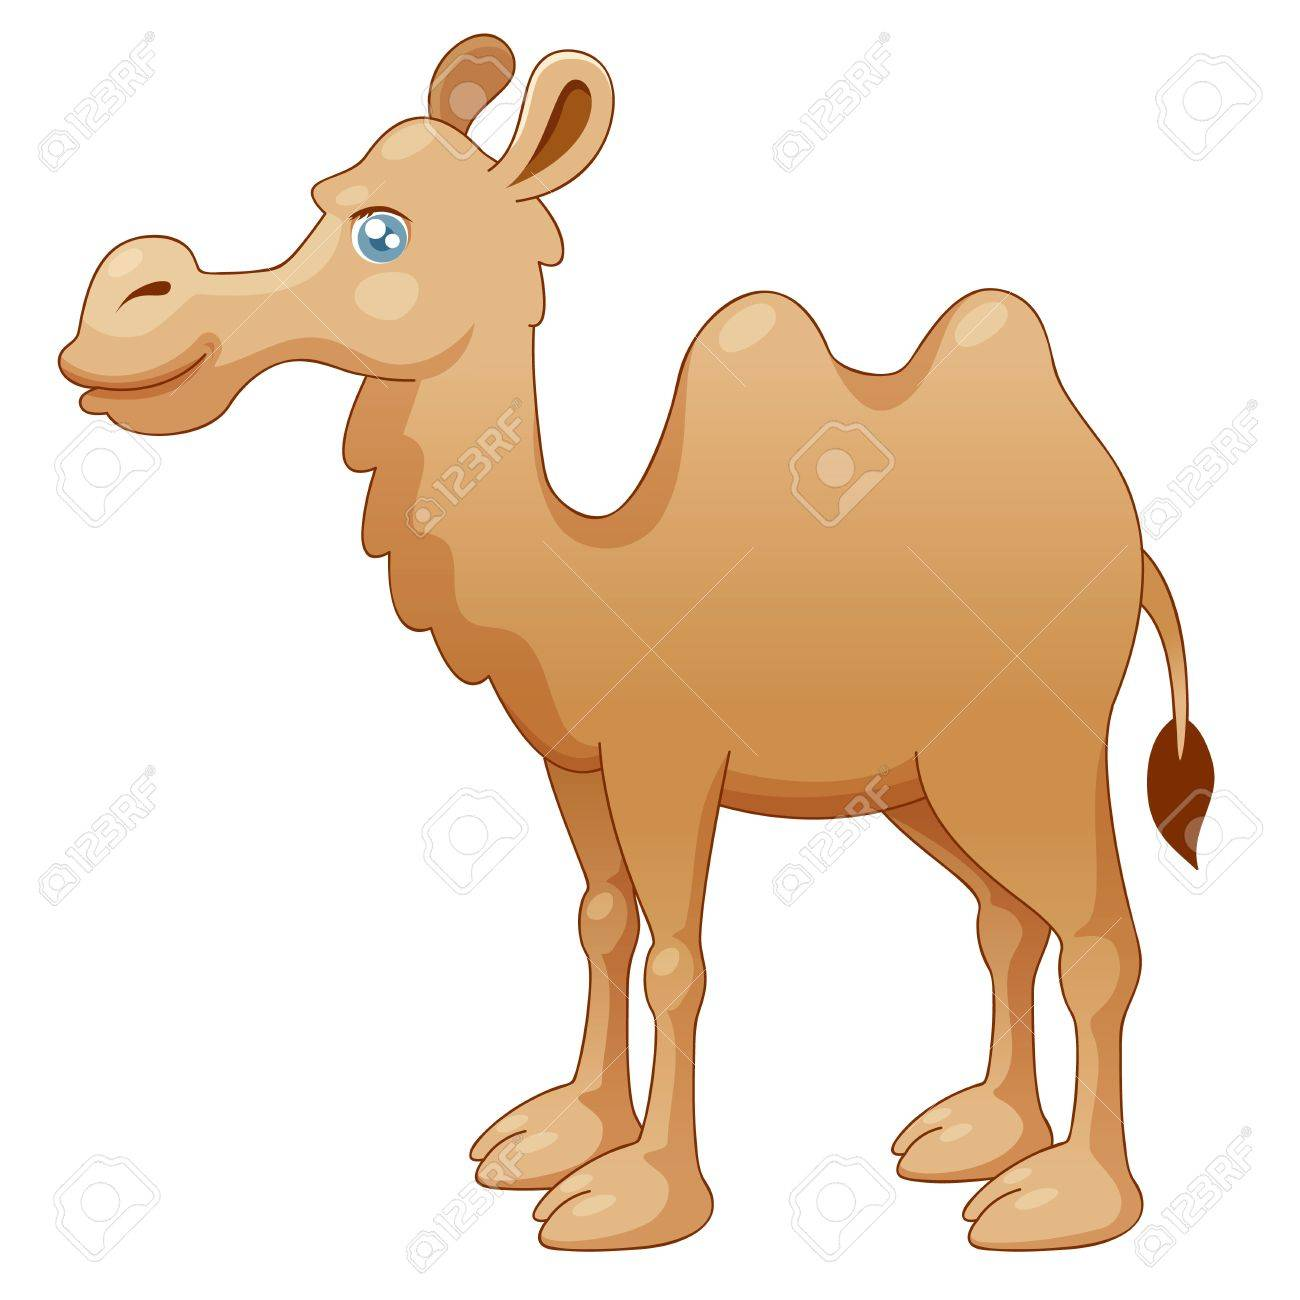 illustration of camel vector royalty free cliparts vectors and